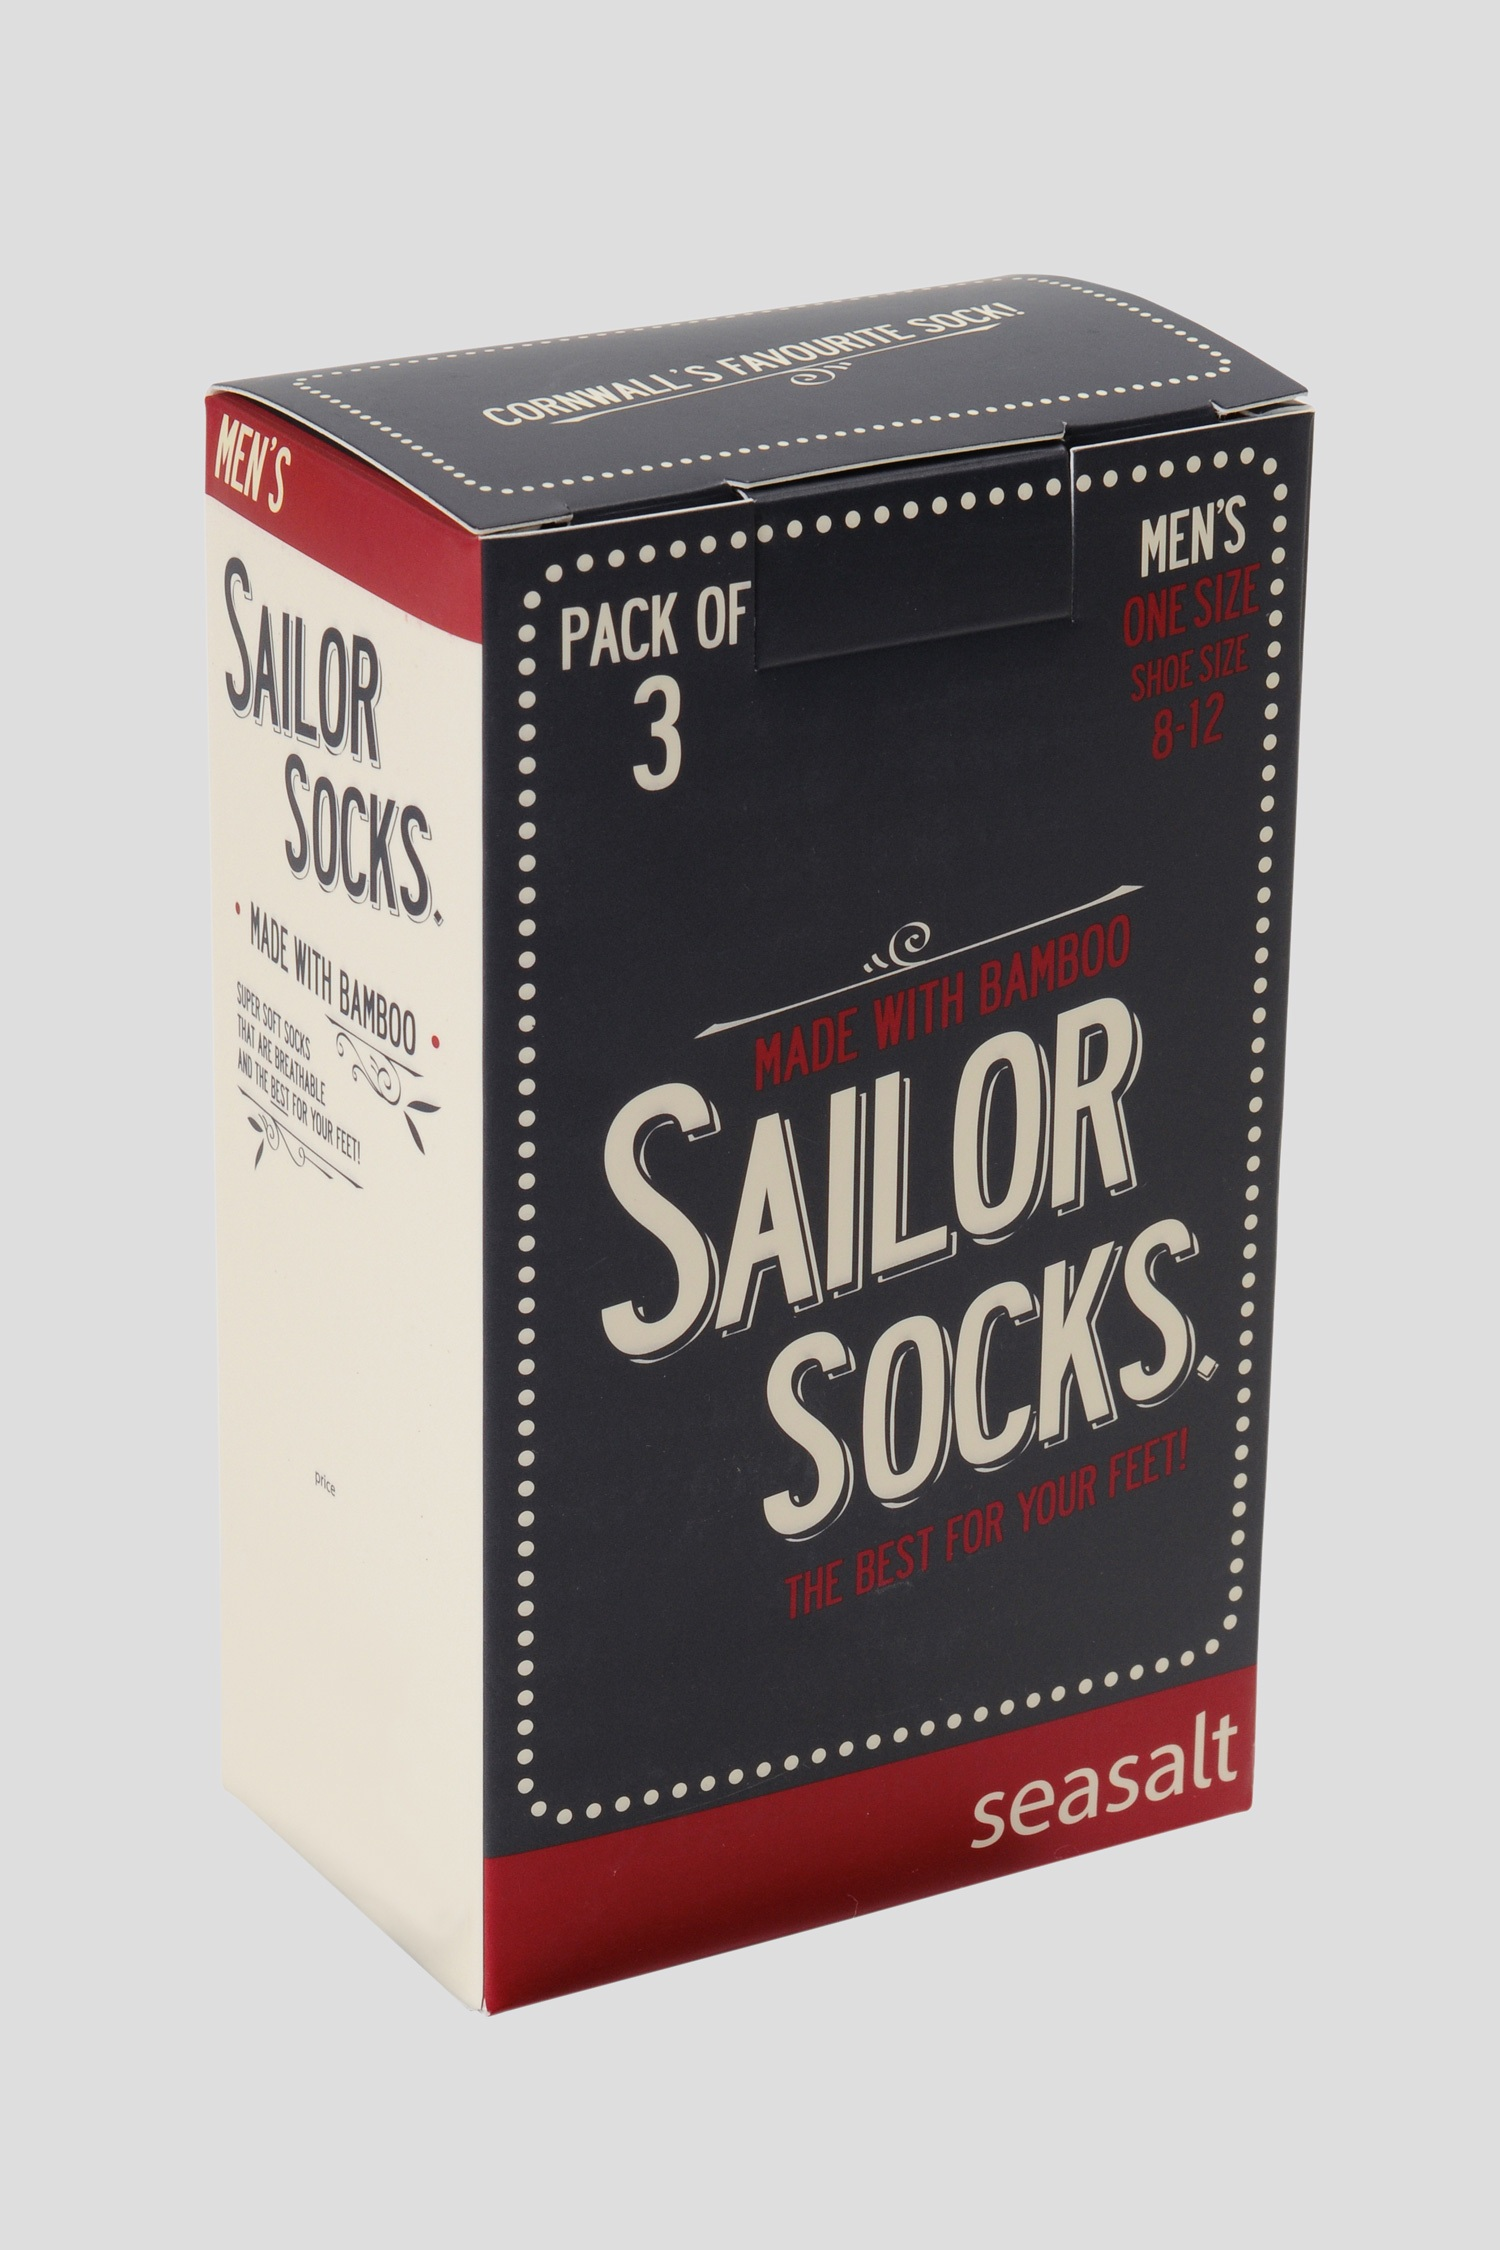 Seasalt Cornwall Sailors Socks